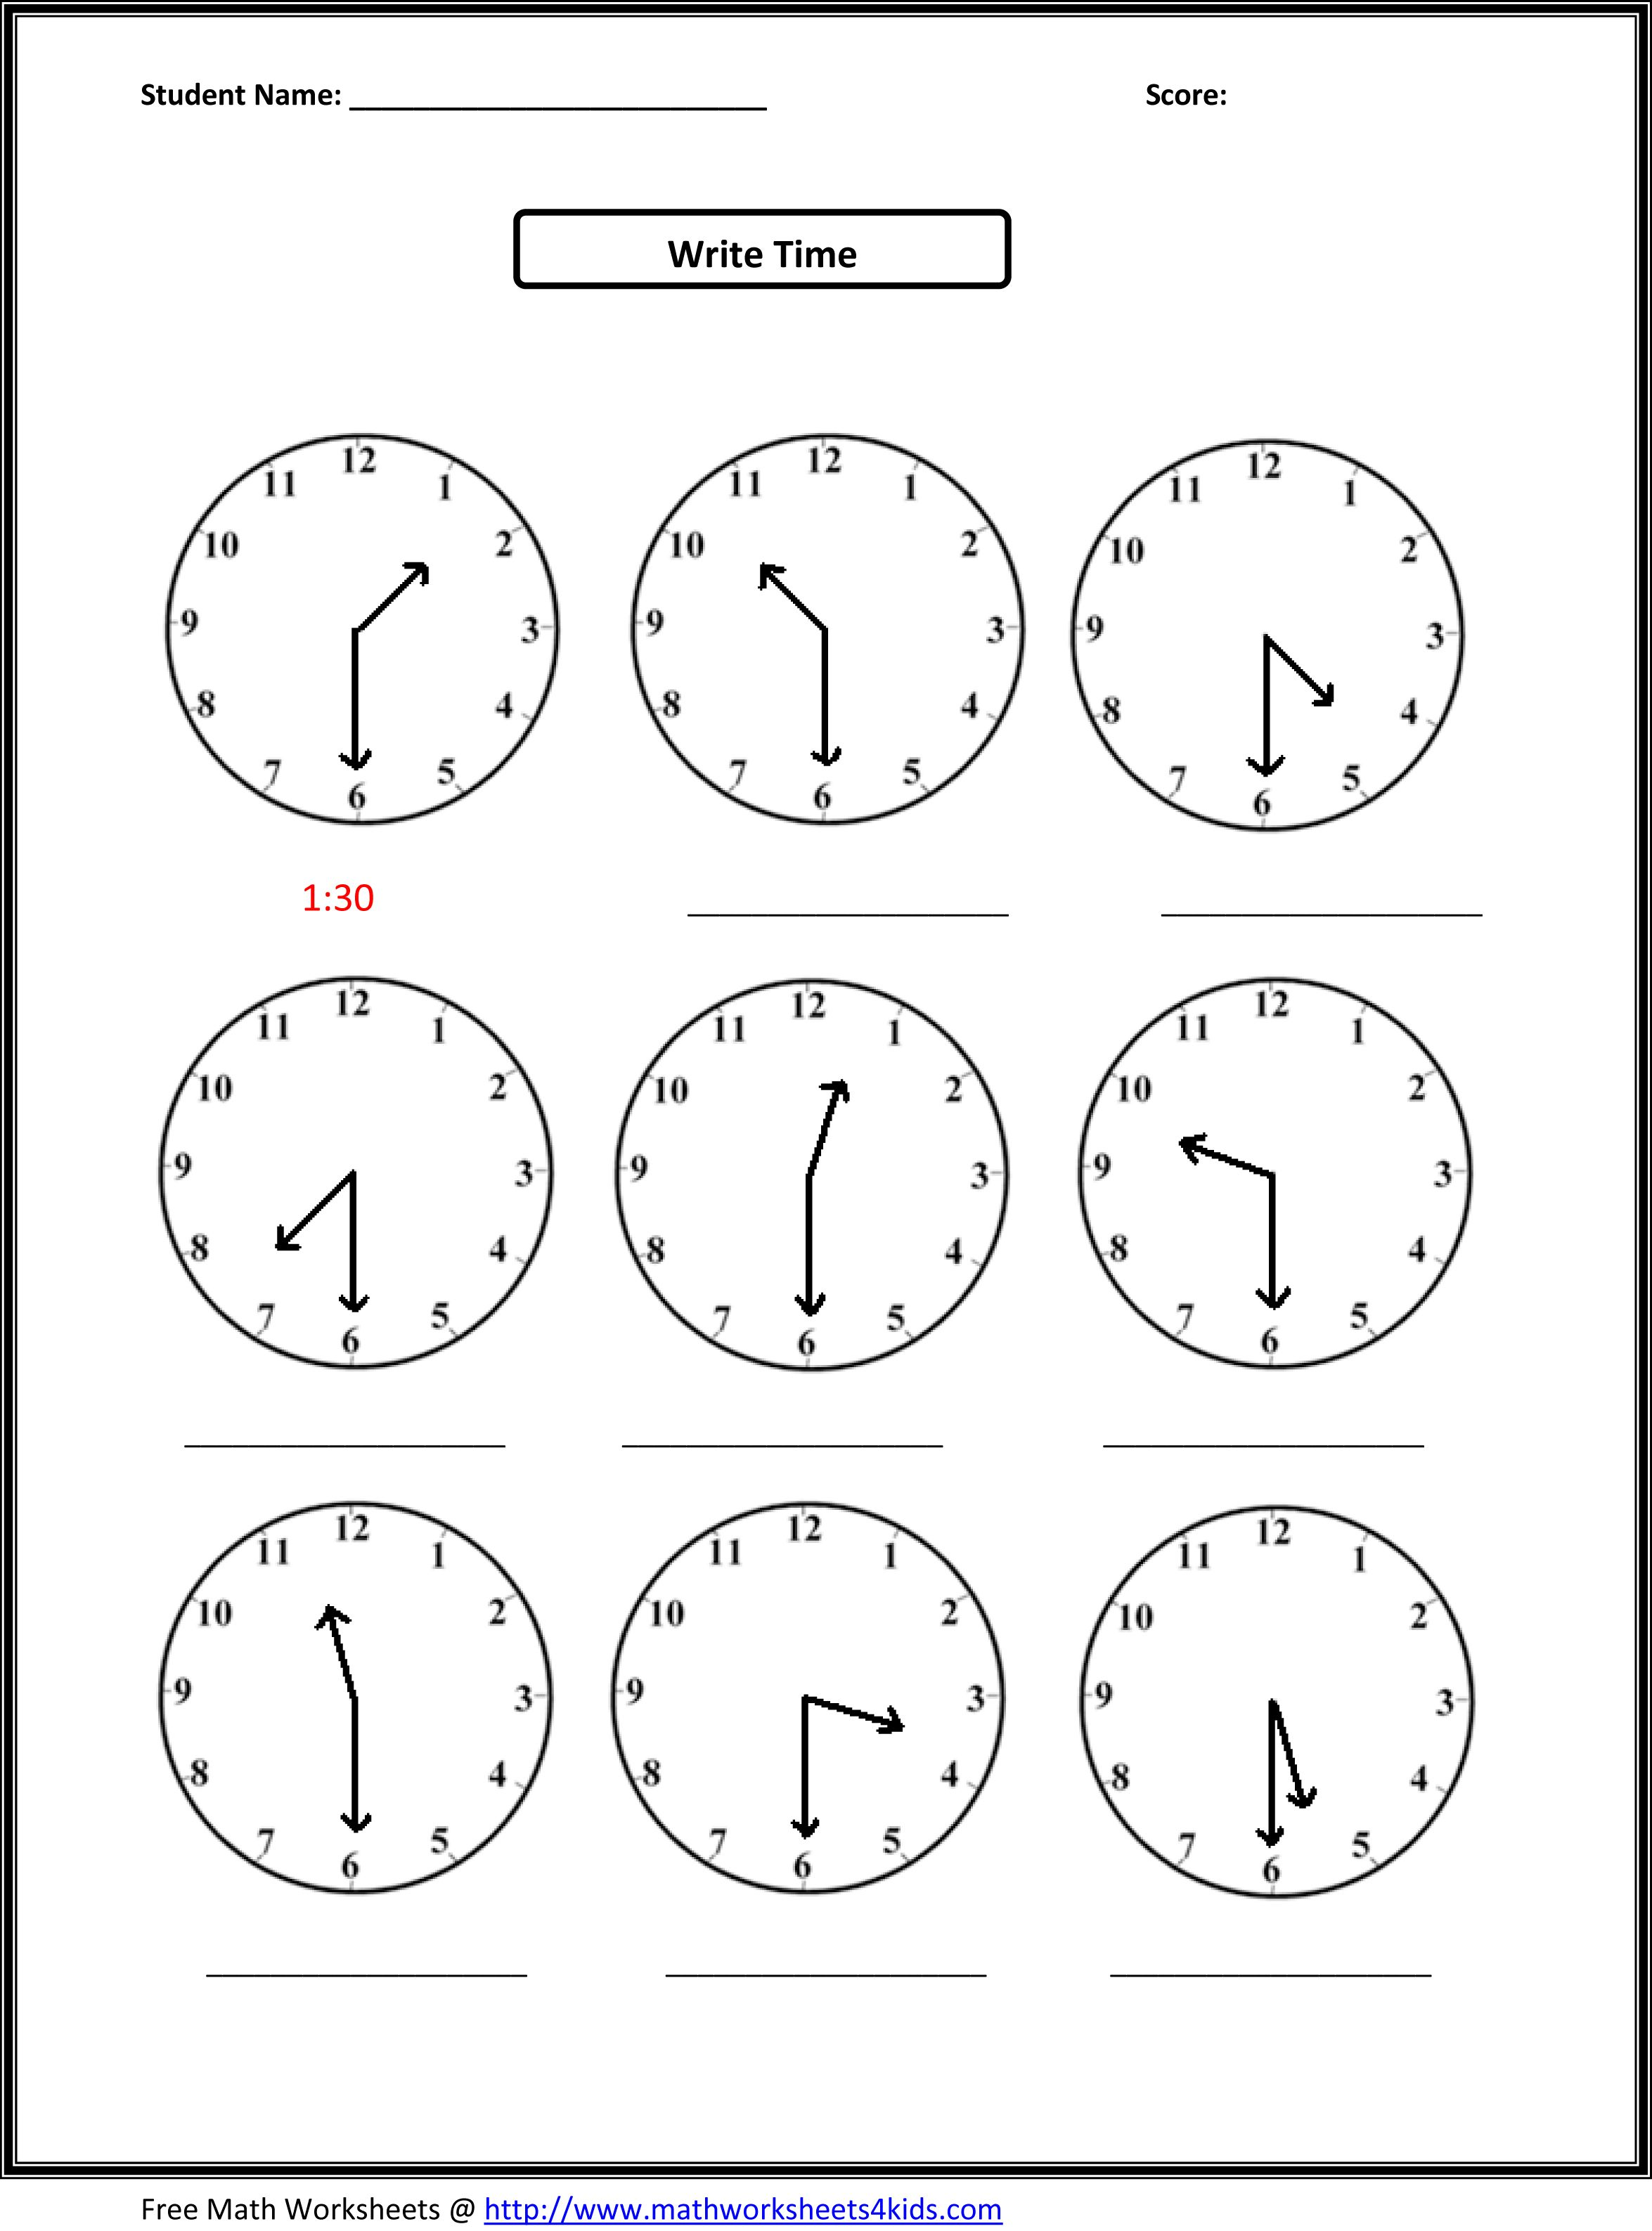 Weirdmailus  Gorgeous Worksheet On Time For Grade   Reocurent With Fetching Free Printable Telling Time Worksheets Nd Grade  Reocurent With Attractive Active Passive Voice Worksheets Also Reading Summary Worksheet In Addition Th Grade Map Skills Worksheets And Graphing Calculator Worksheet As Well As Sh Sound Worksheets Additionally Main Idea And Details Worksheets Rd Grade From Reocurentcom With Weirdmailus  Fetching Worksheet On Time For Grade   Reocurent With Attractive Free Printable Telling Time Worksheets Nd Grade  Reocurent And Gorgeous Active Passive Voice Worksheets Also Reading Summary Worksheet In Addition Th Grade Map Skills Worksheets From Reocurentcom